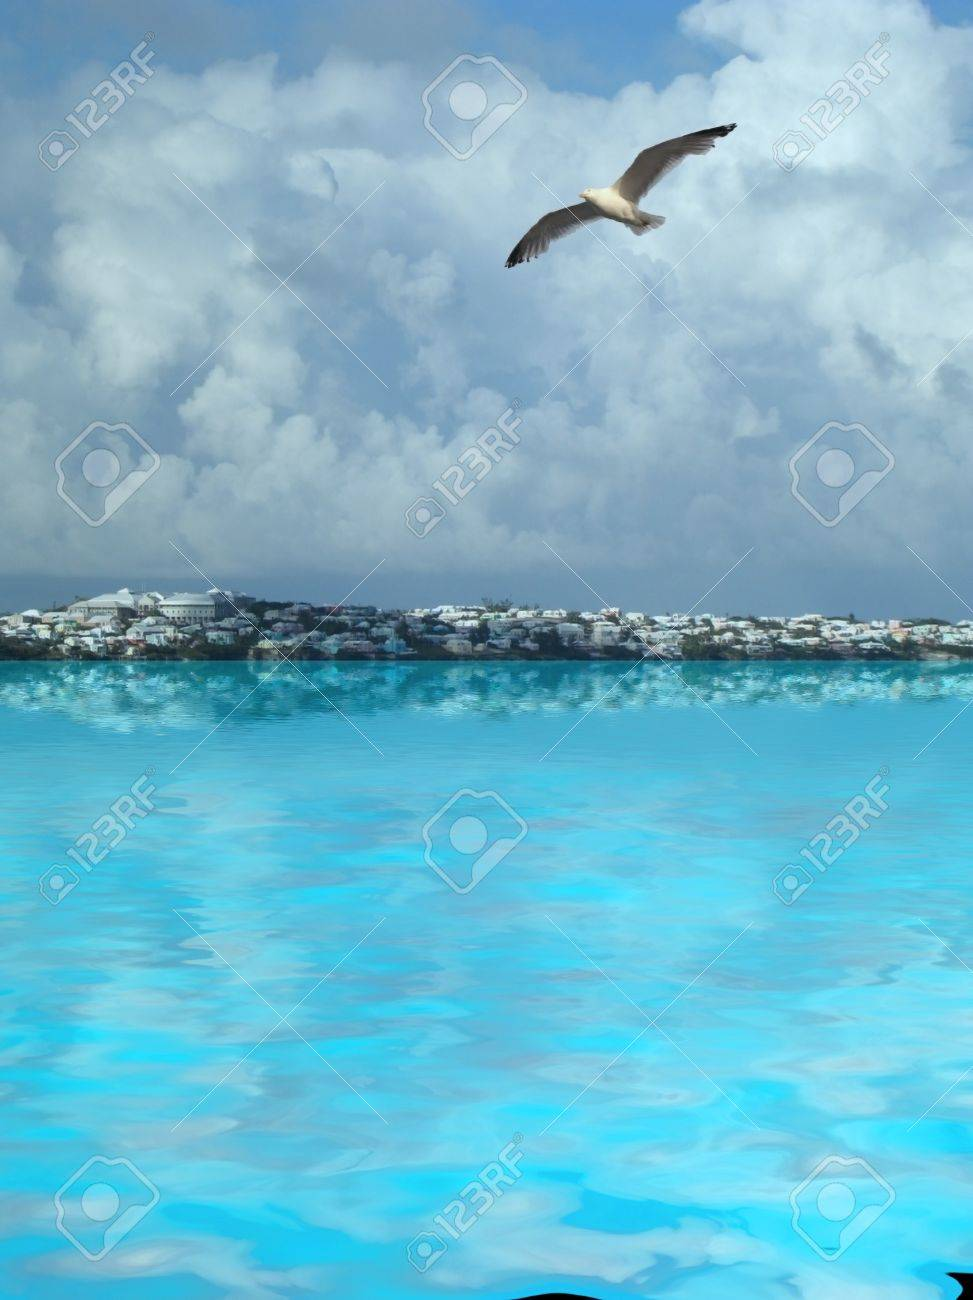 Bermuda Stock Photo - 4138968